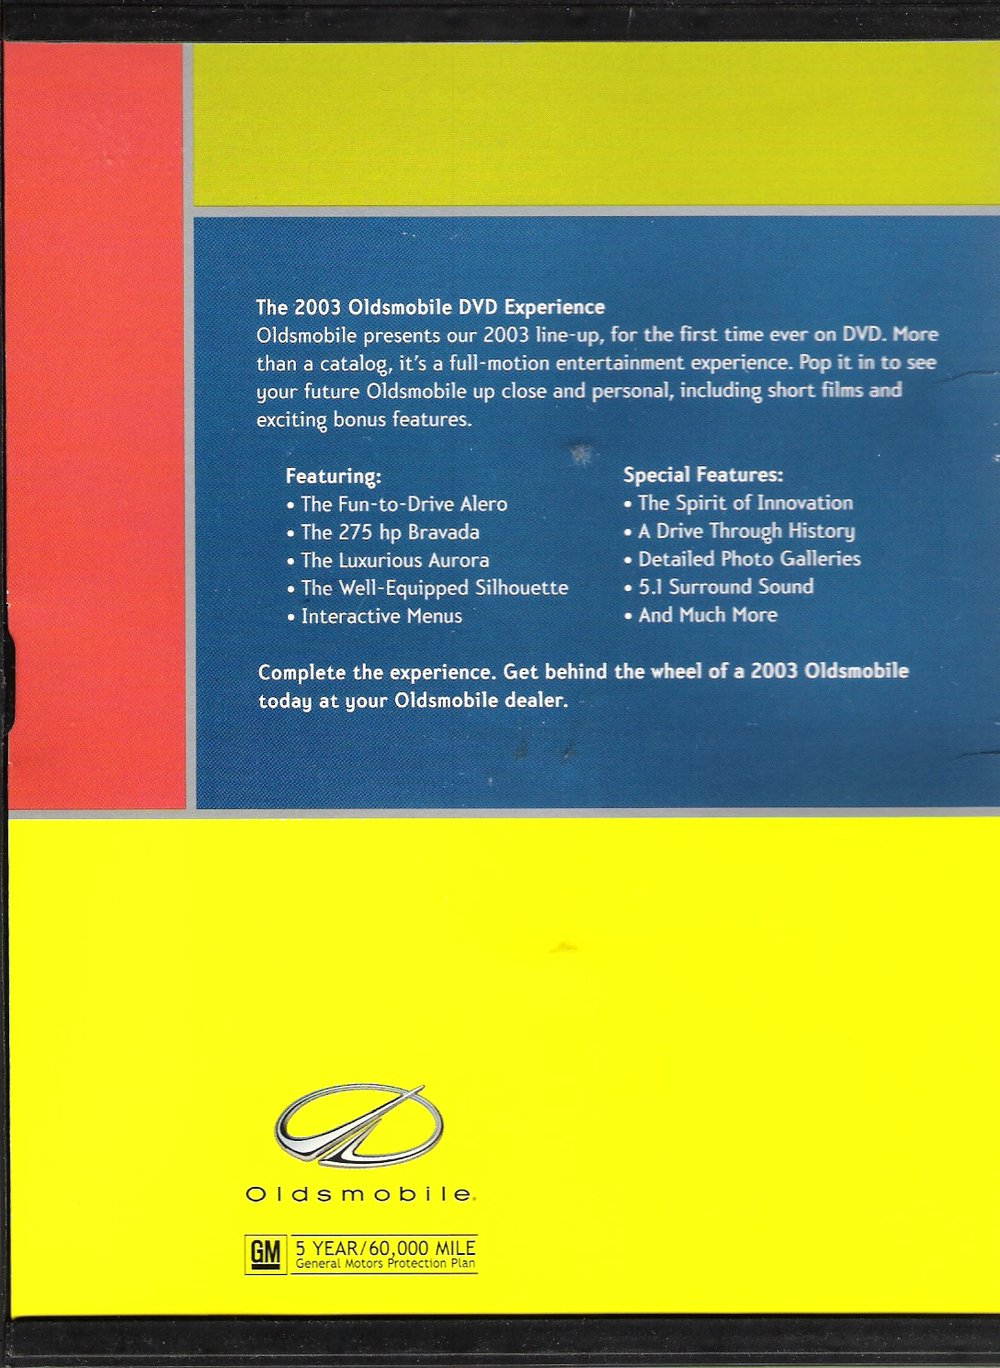 National Auto Show - GM Oldsmobile Catalog DVD Experience (back cover)